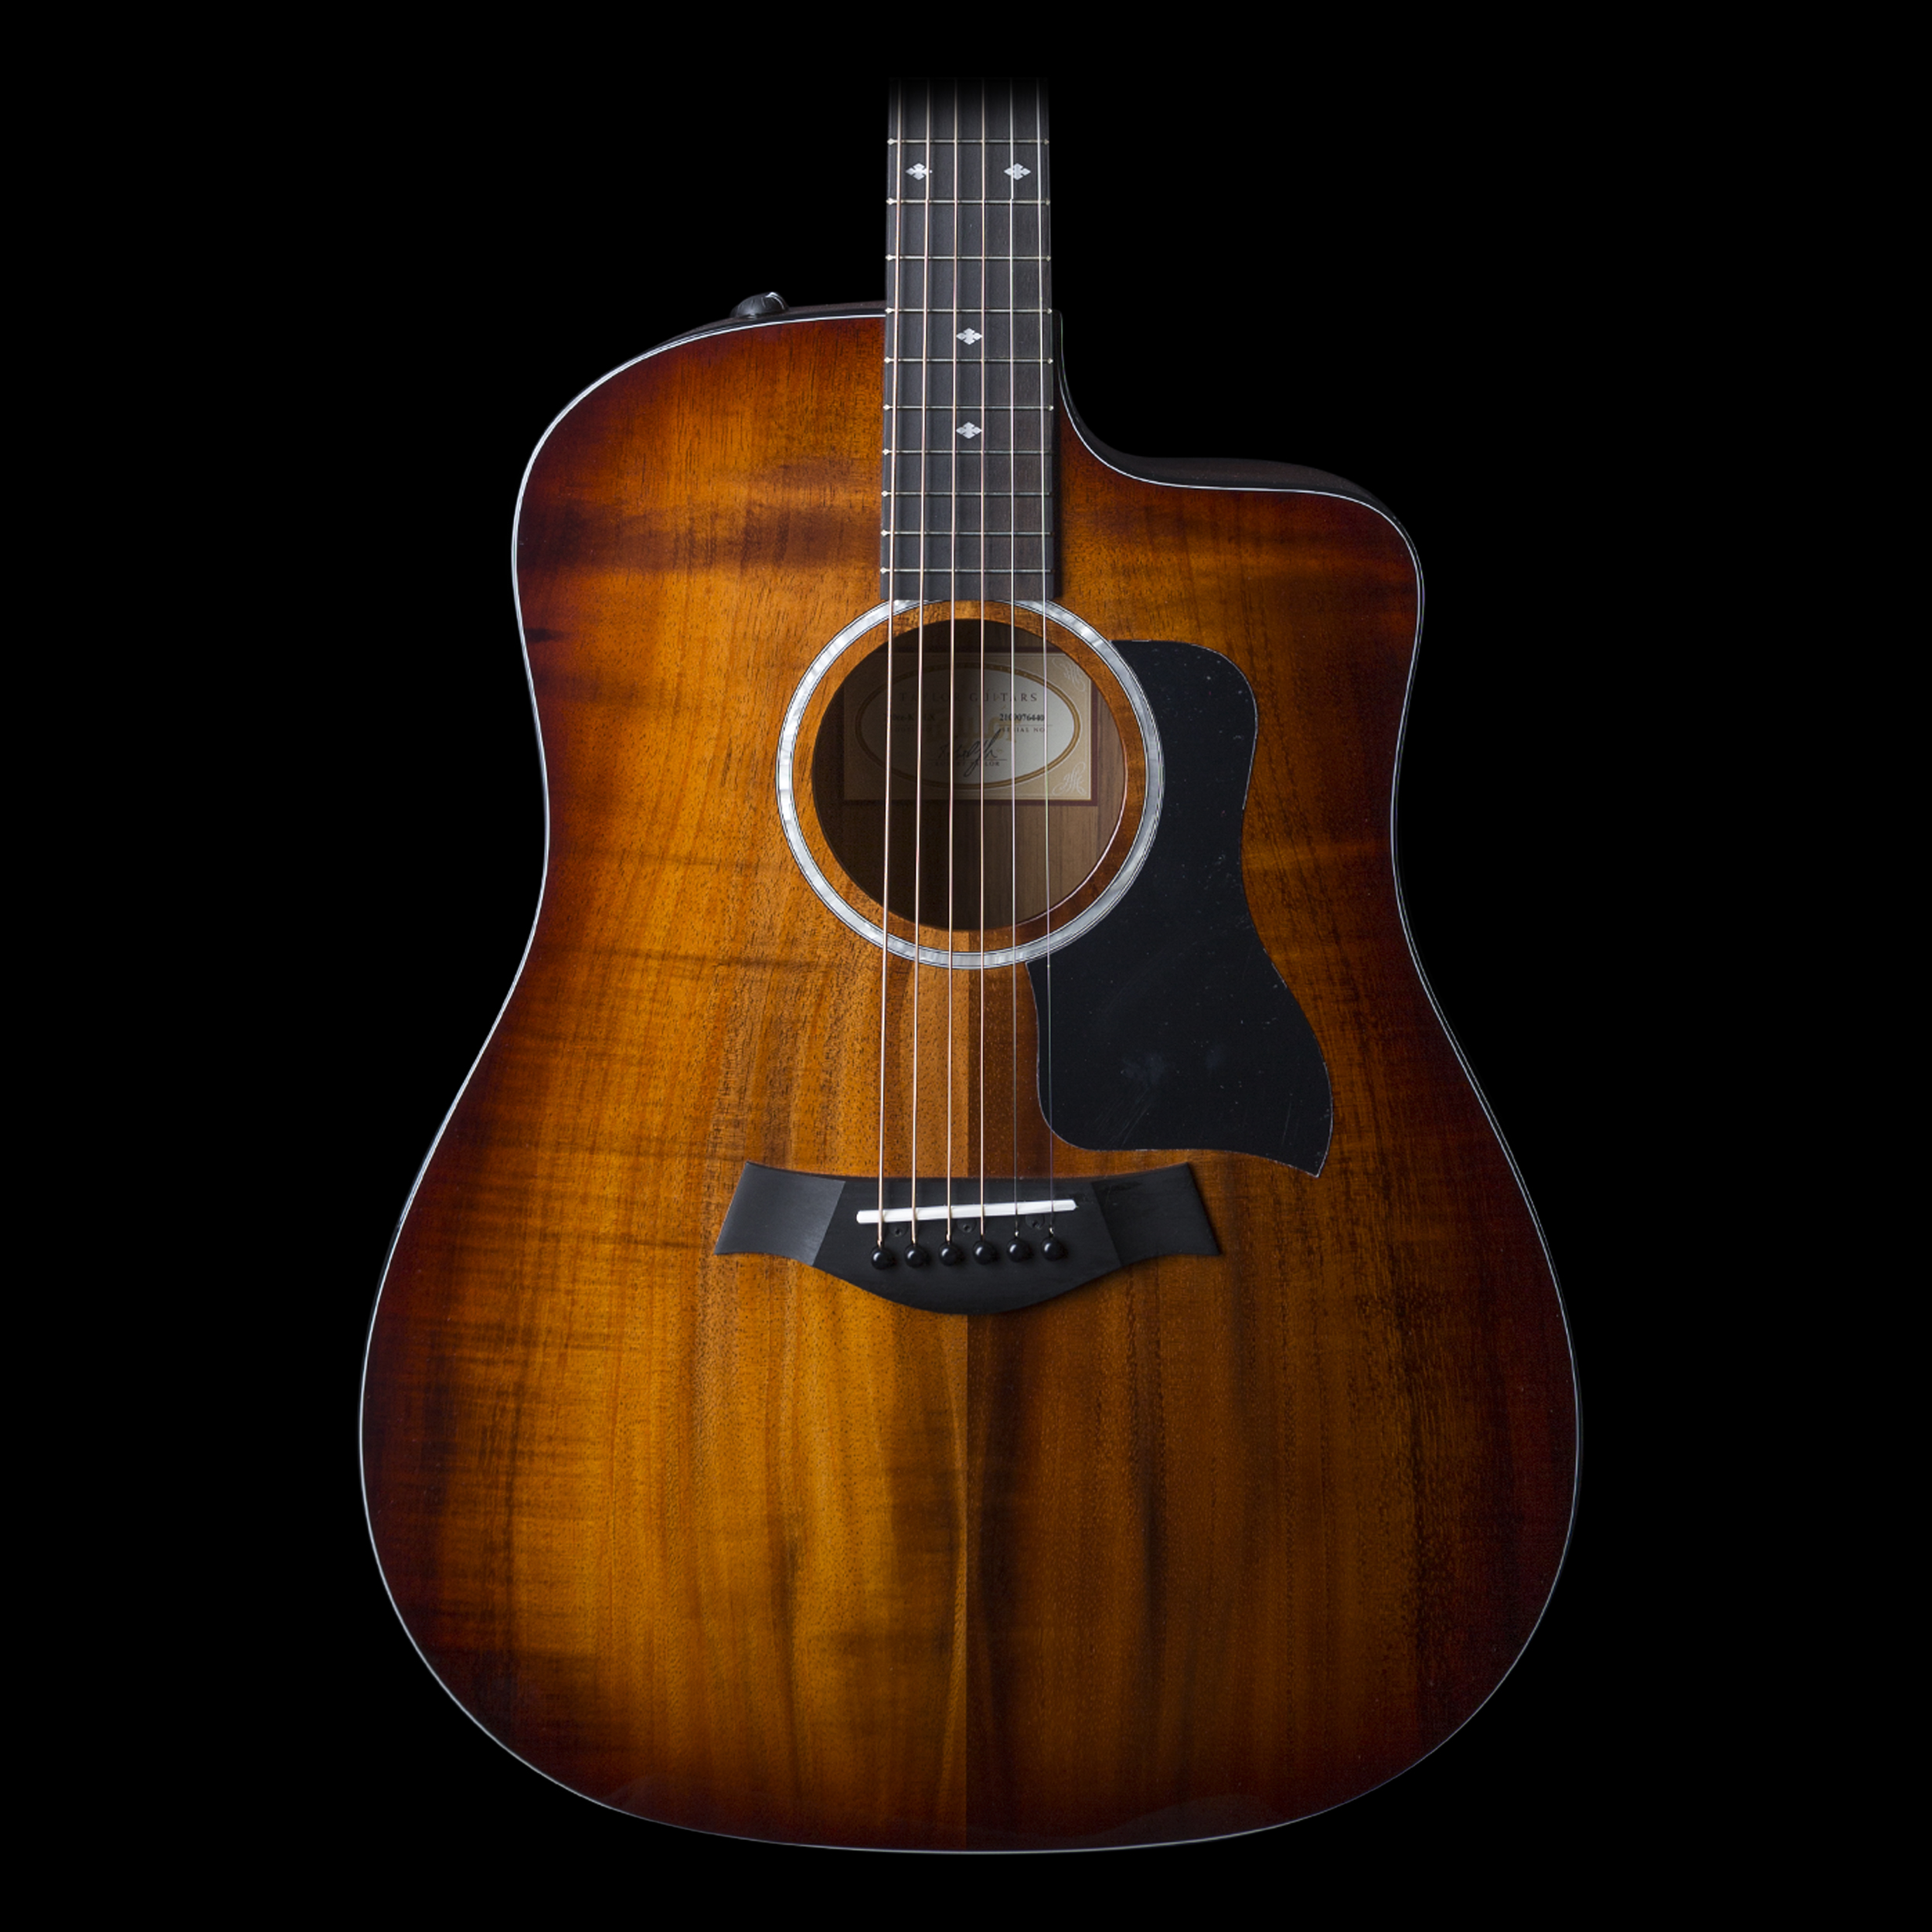 taylor 220ce koa deluxe dreadnought acoustic electric guitar ebay. Black Bedroom Furniture Sets. Home Design Ideas